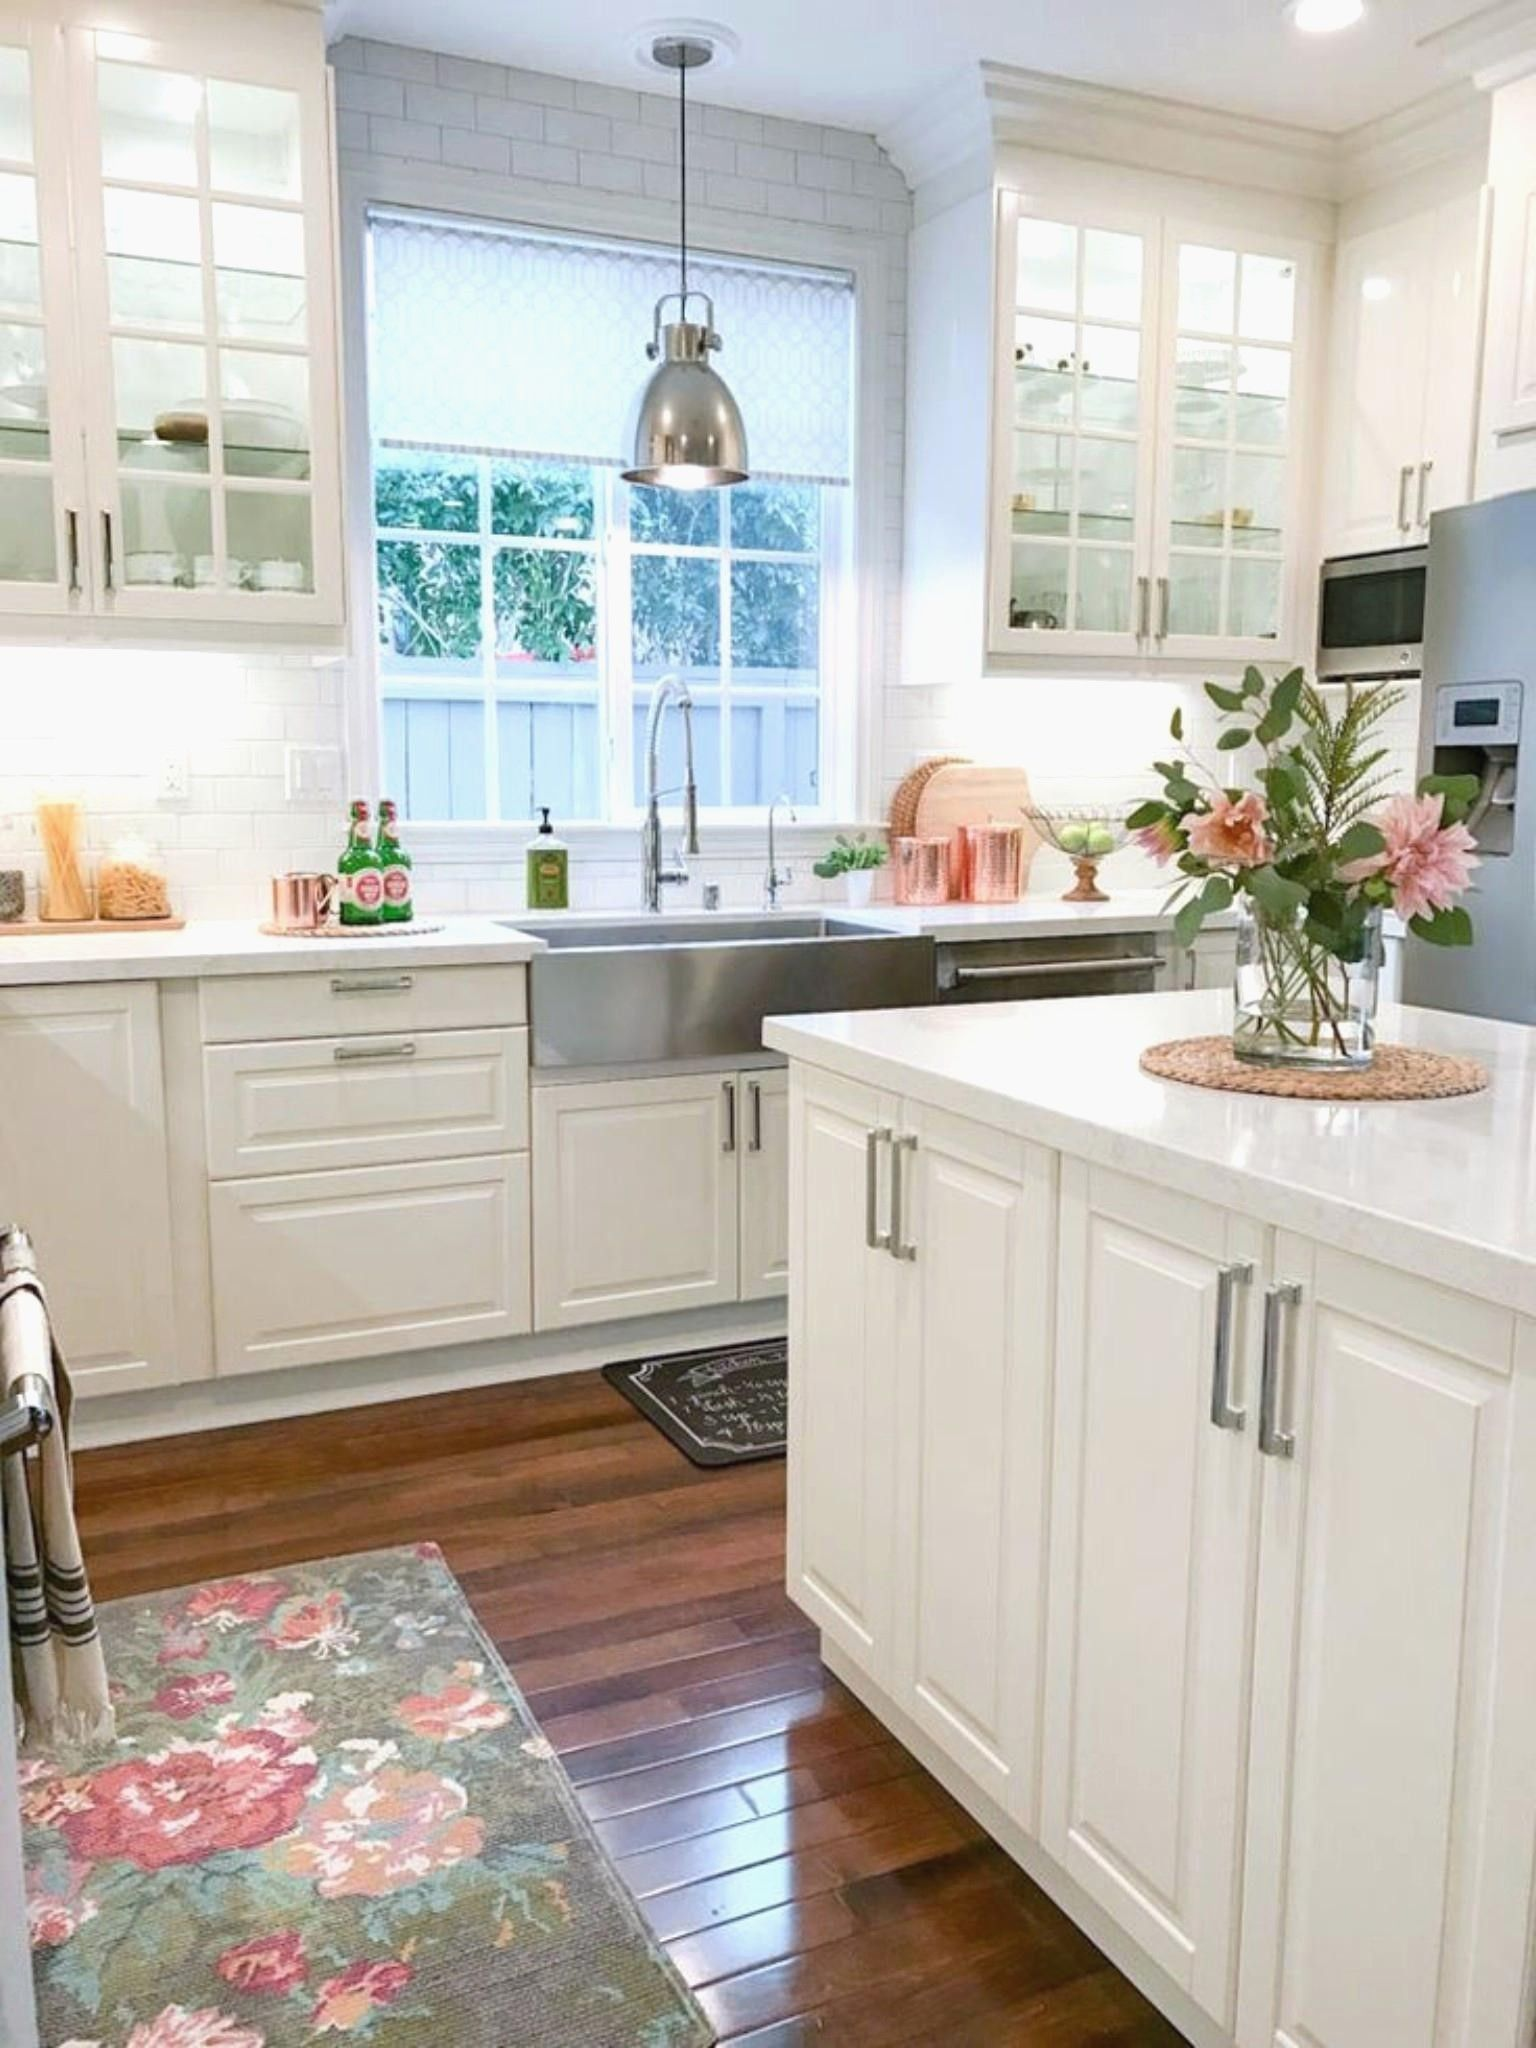 Luxury Kitchen Cabinets Home Lowes The Awesome Along With Beautiful Kitchen Cabinets Home Lowe New Kitchen Cabinets Kitchen Sink Decor Kitchen Cabinet Design